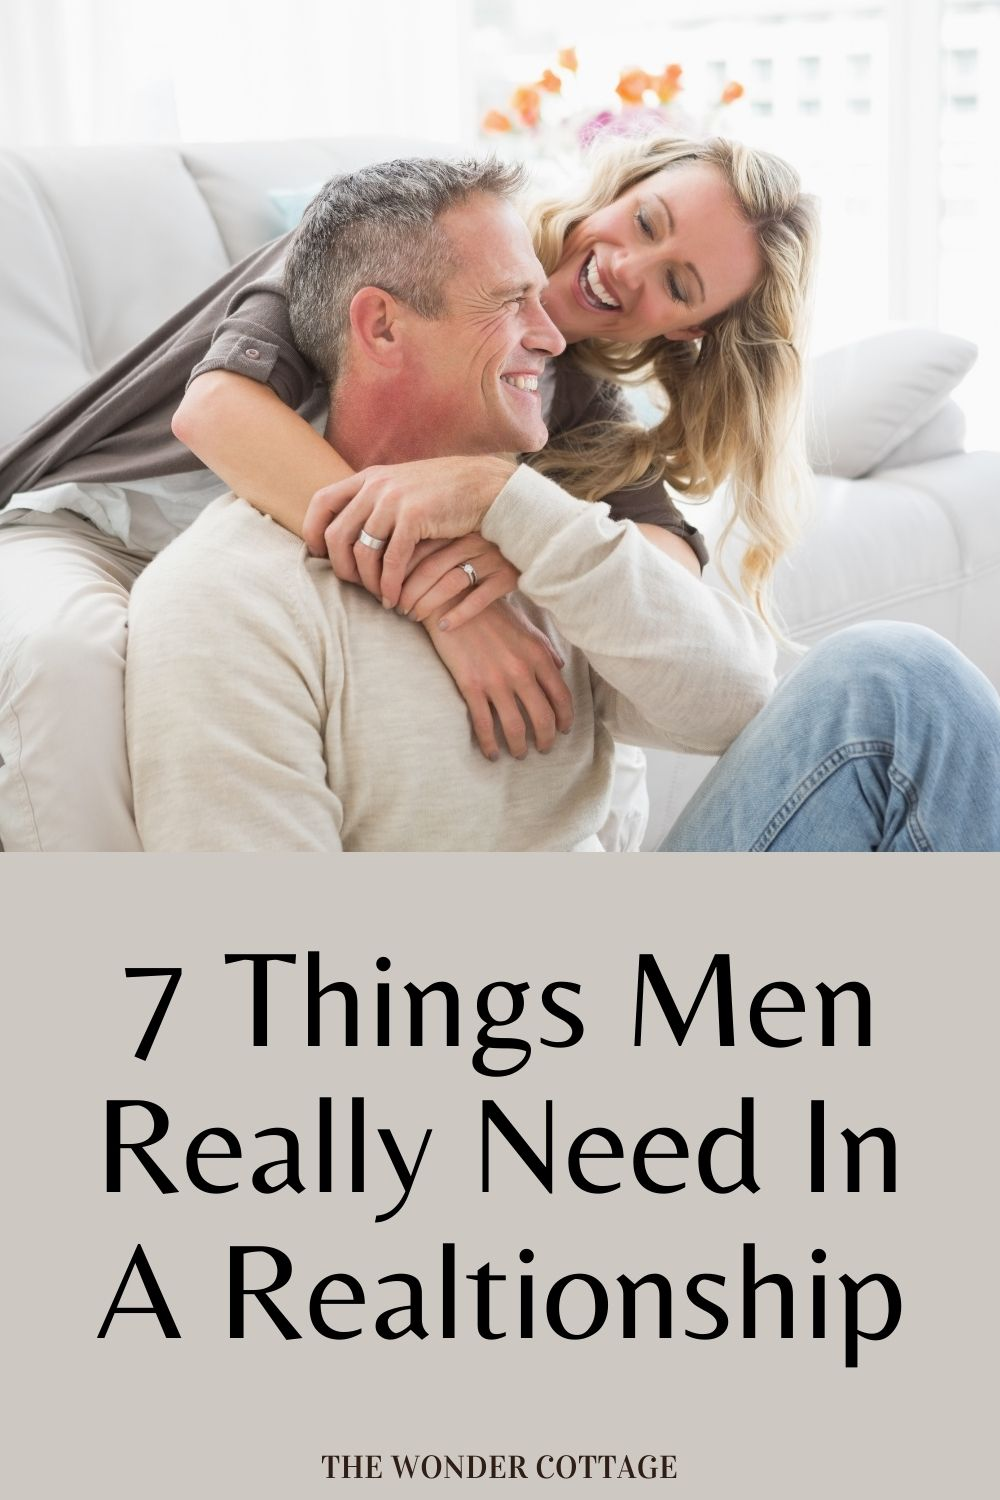 7 things men really need in a relationship